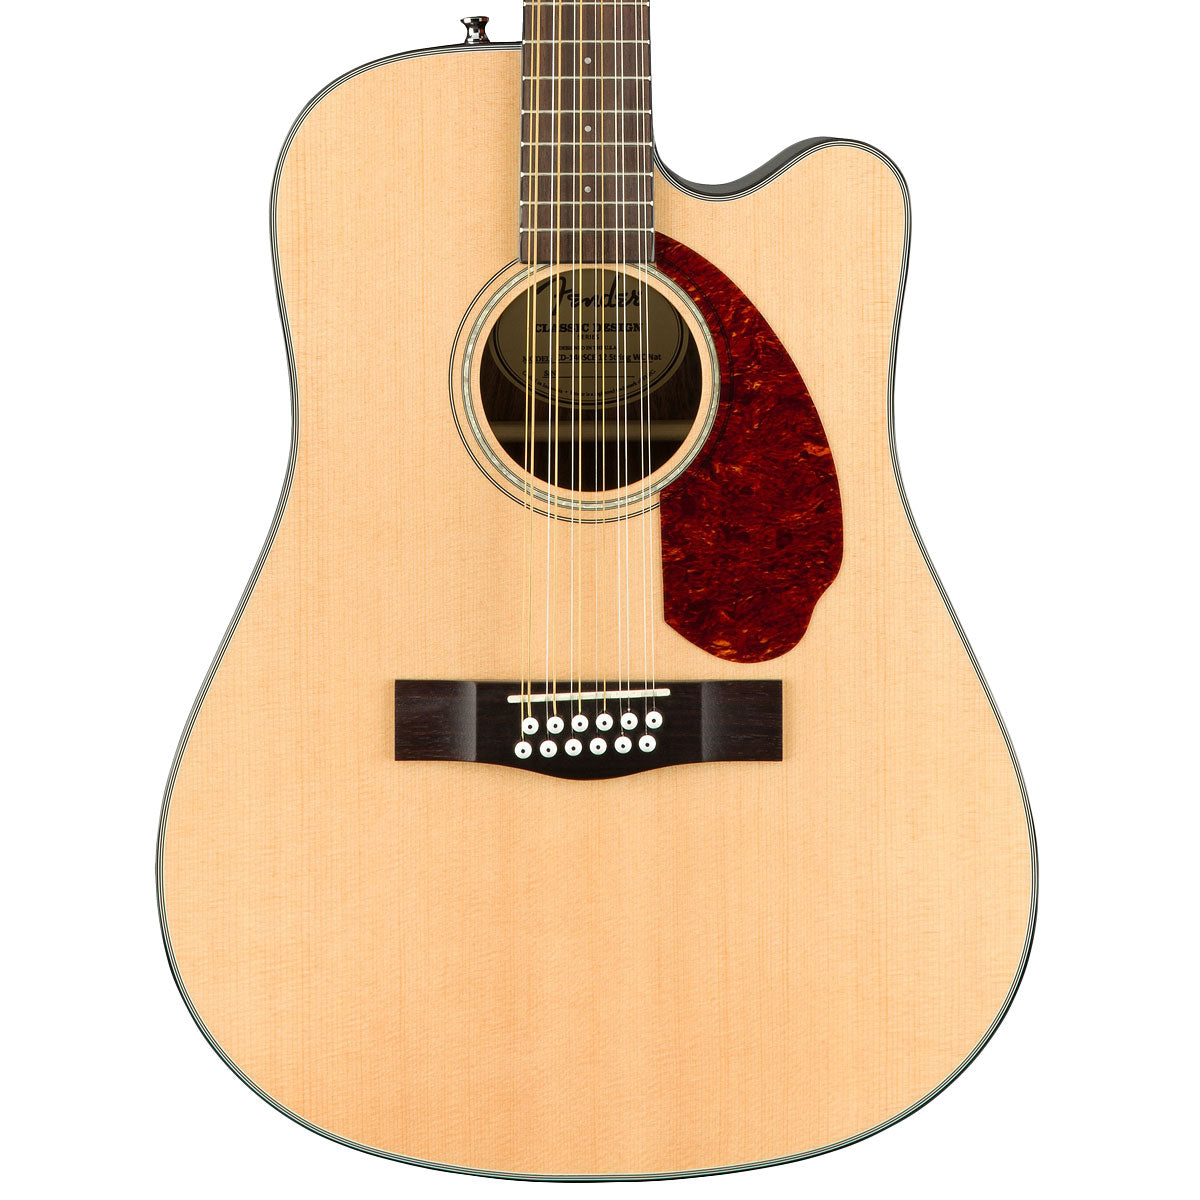 Fender CD-140SCE 12-String, Natural, Inc Hard Case | Lucky Fret Music Co.